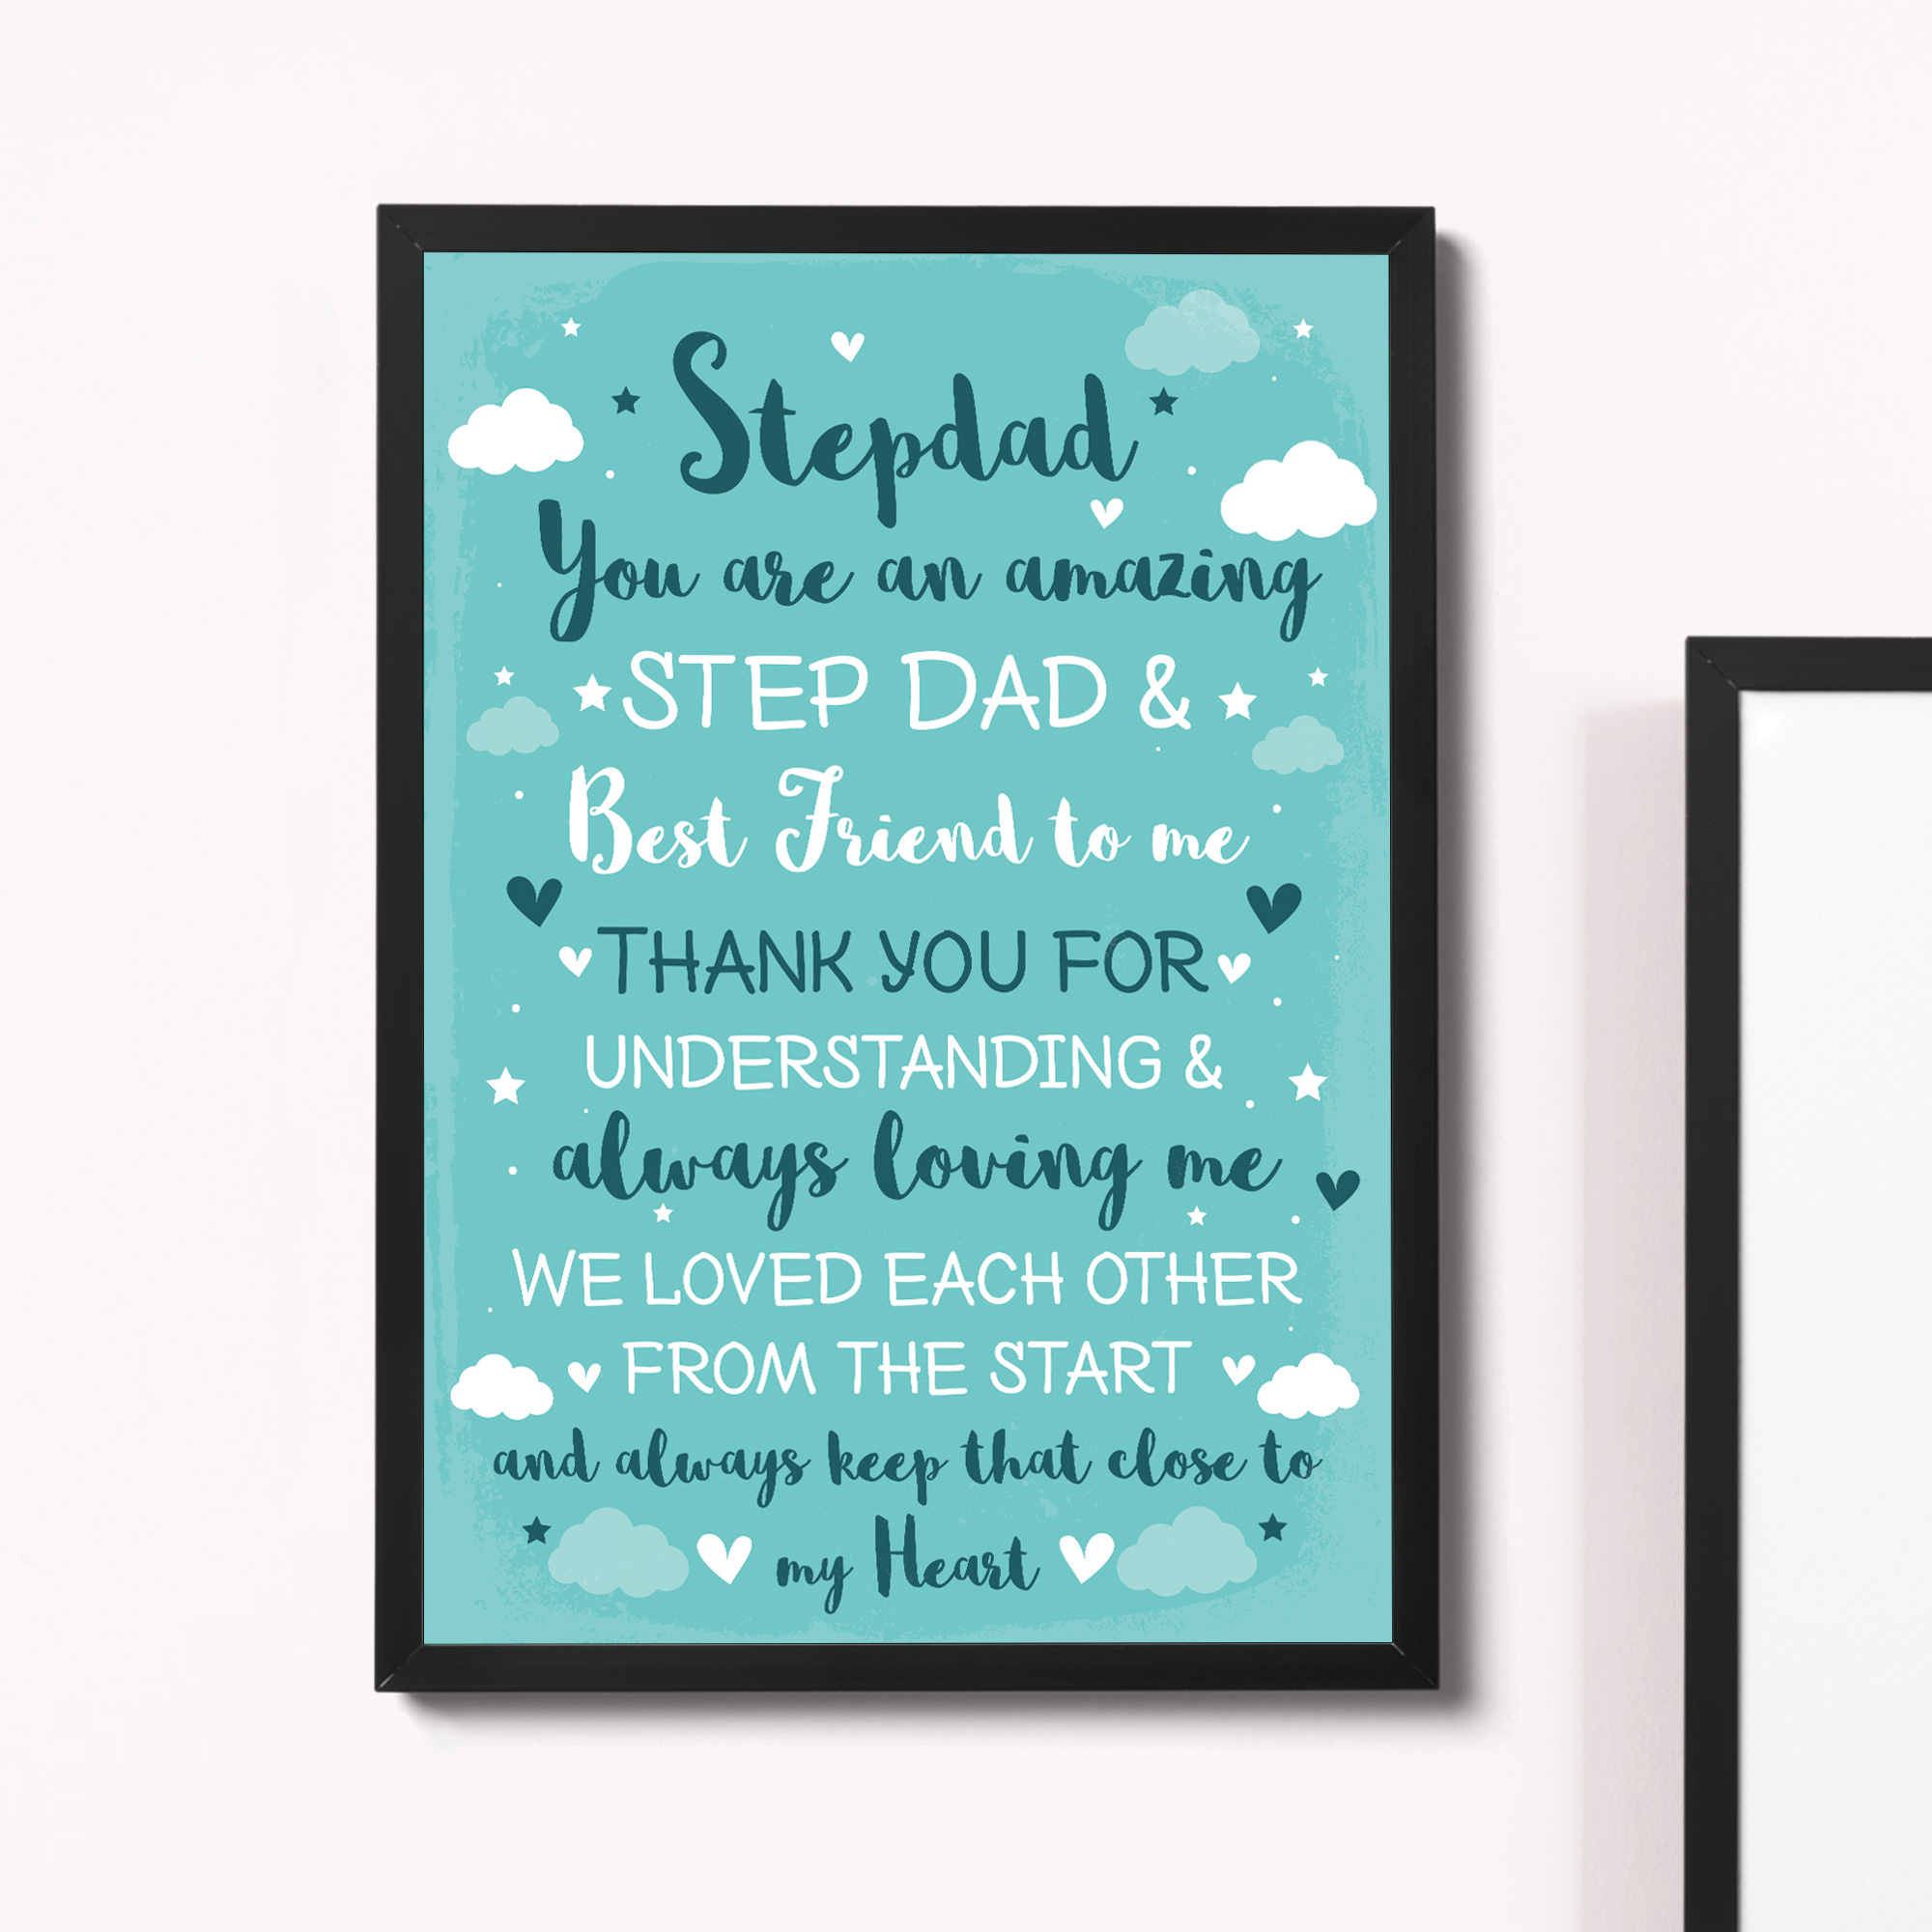 Details About Step Dad Fathers Day Gifts Birthday For From Daughter